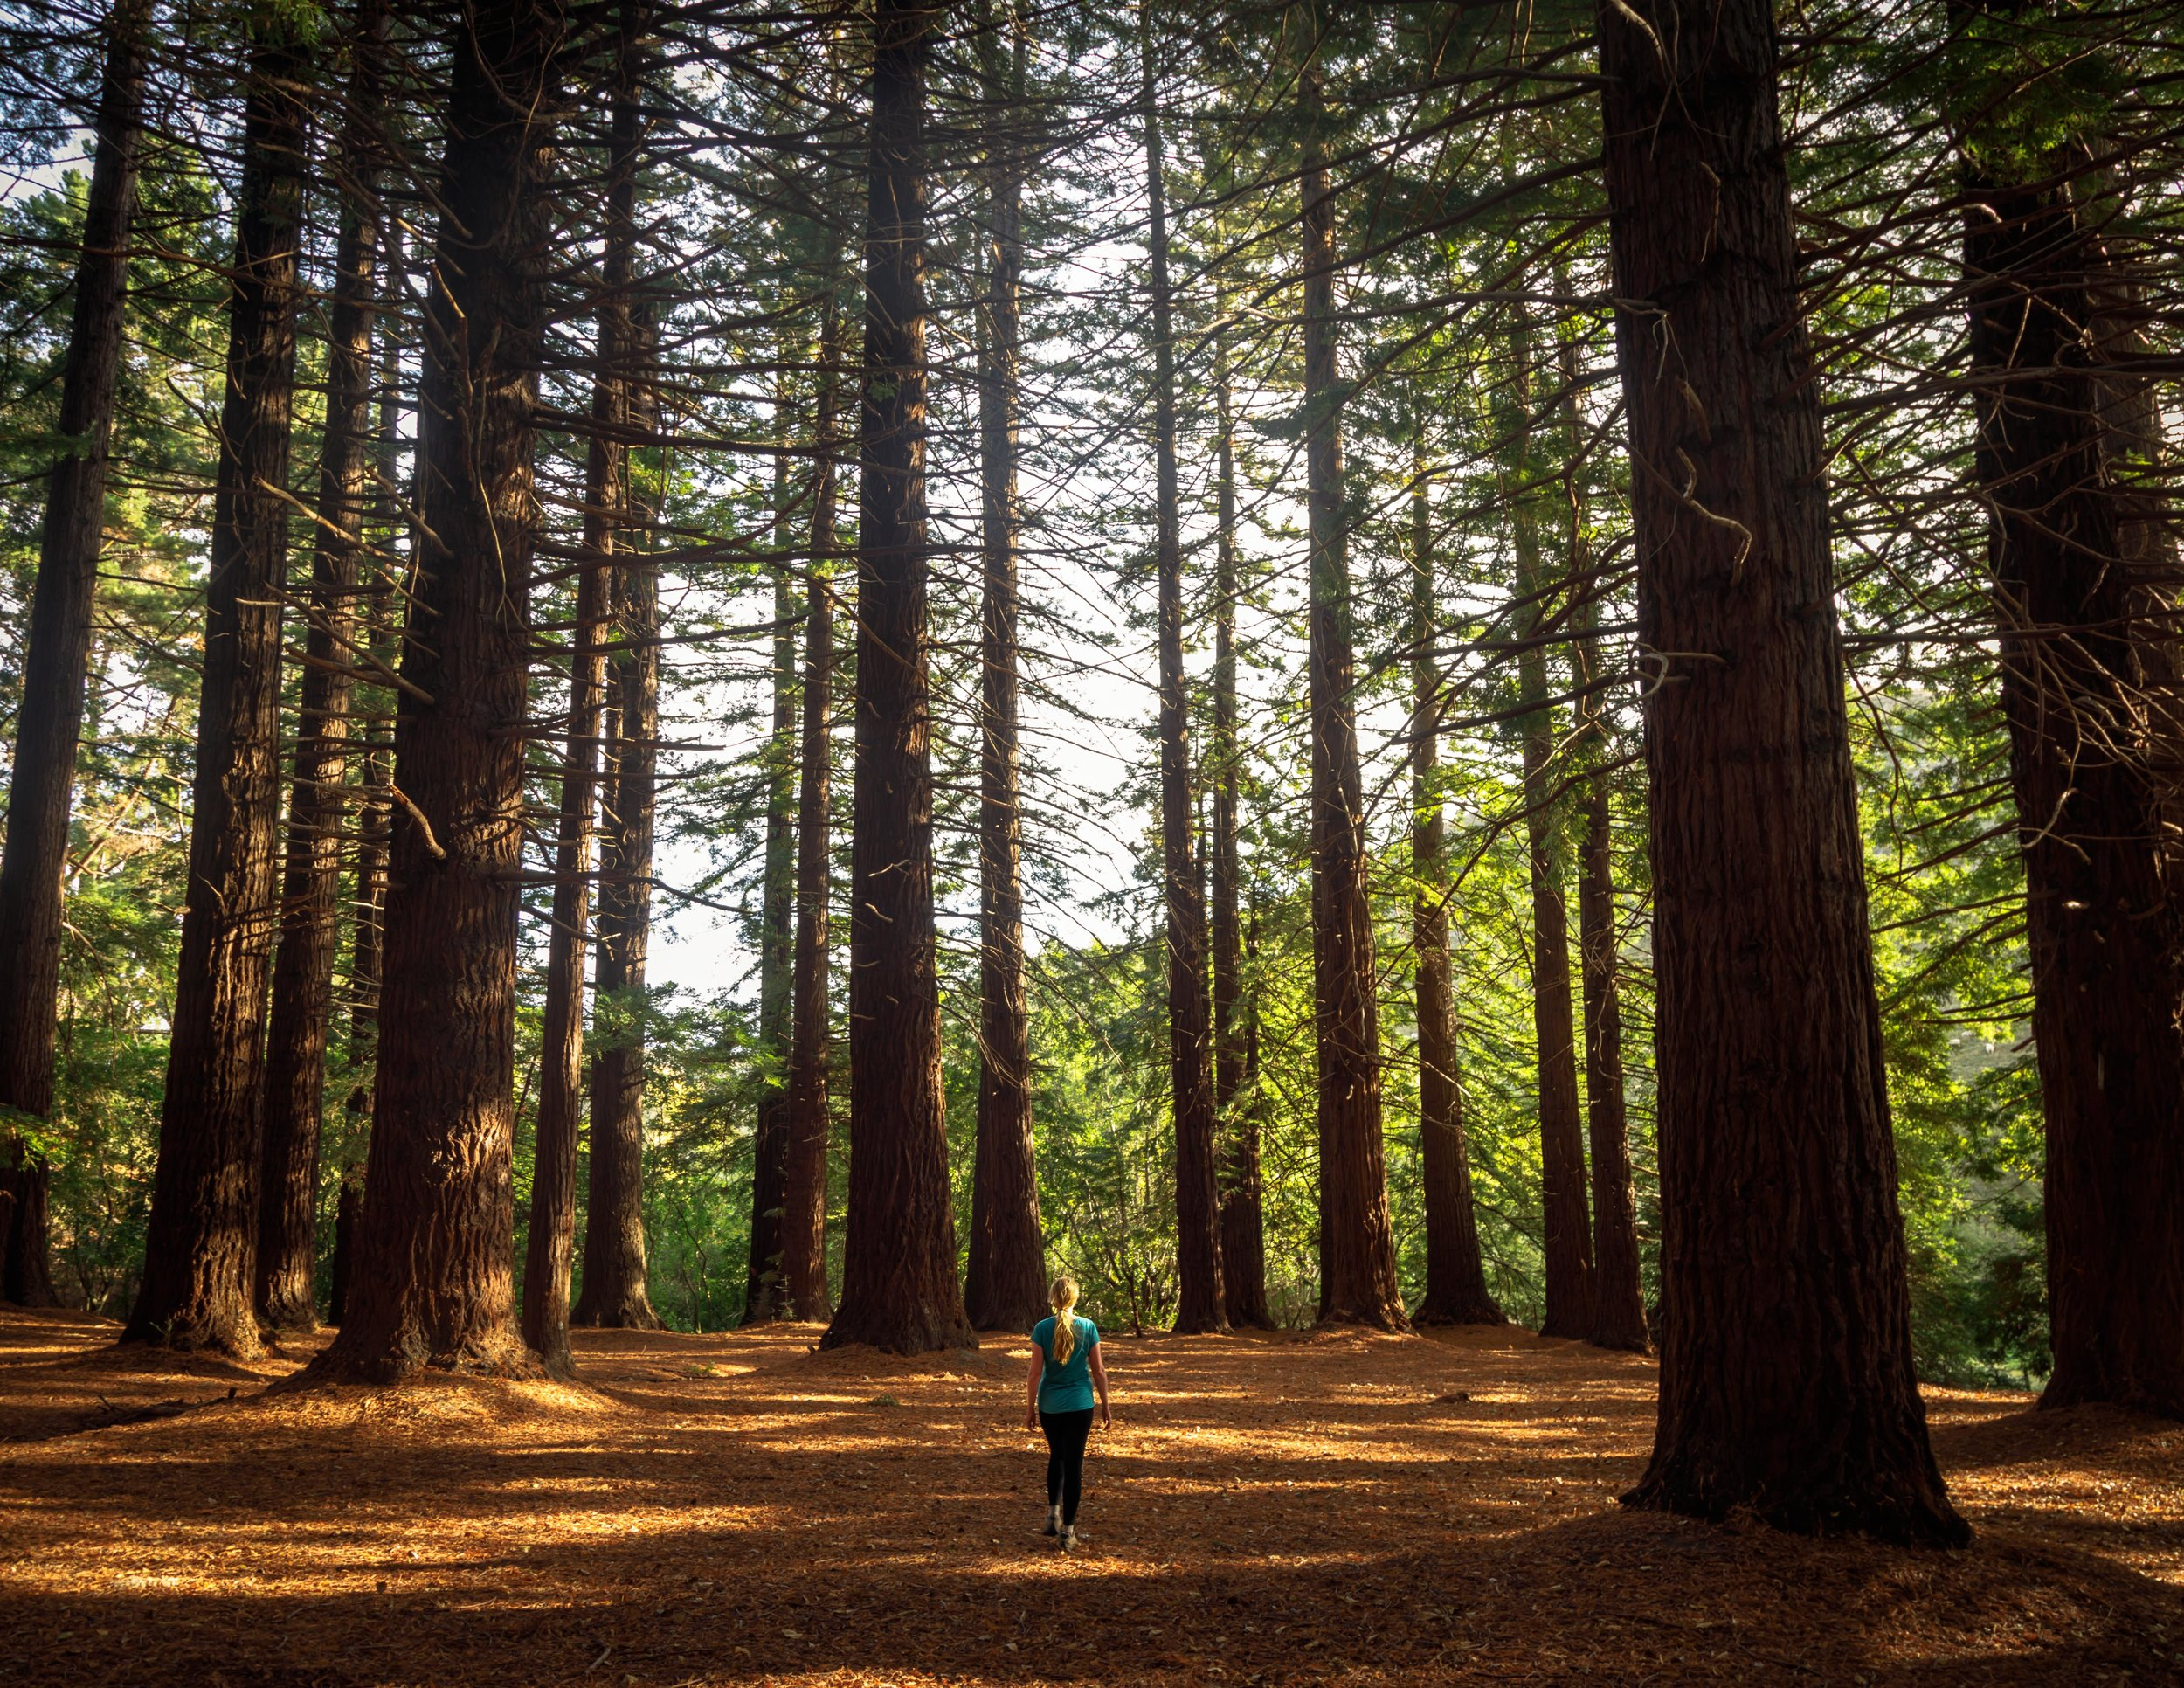 The Big Redwood Forest in Hawkes Bay